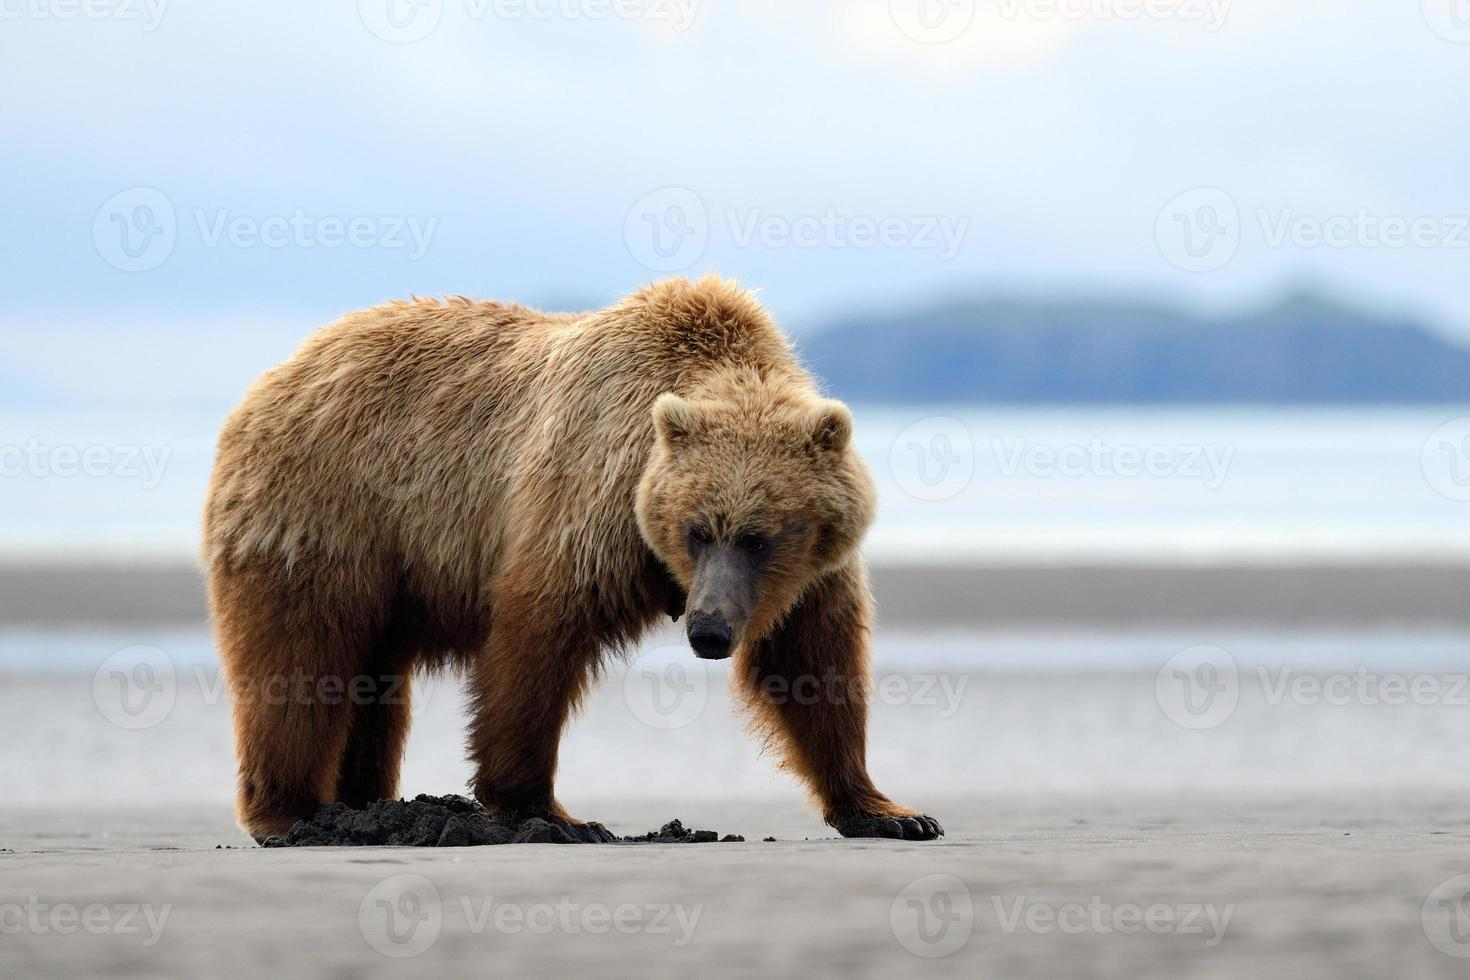 Grizzly photo